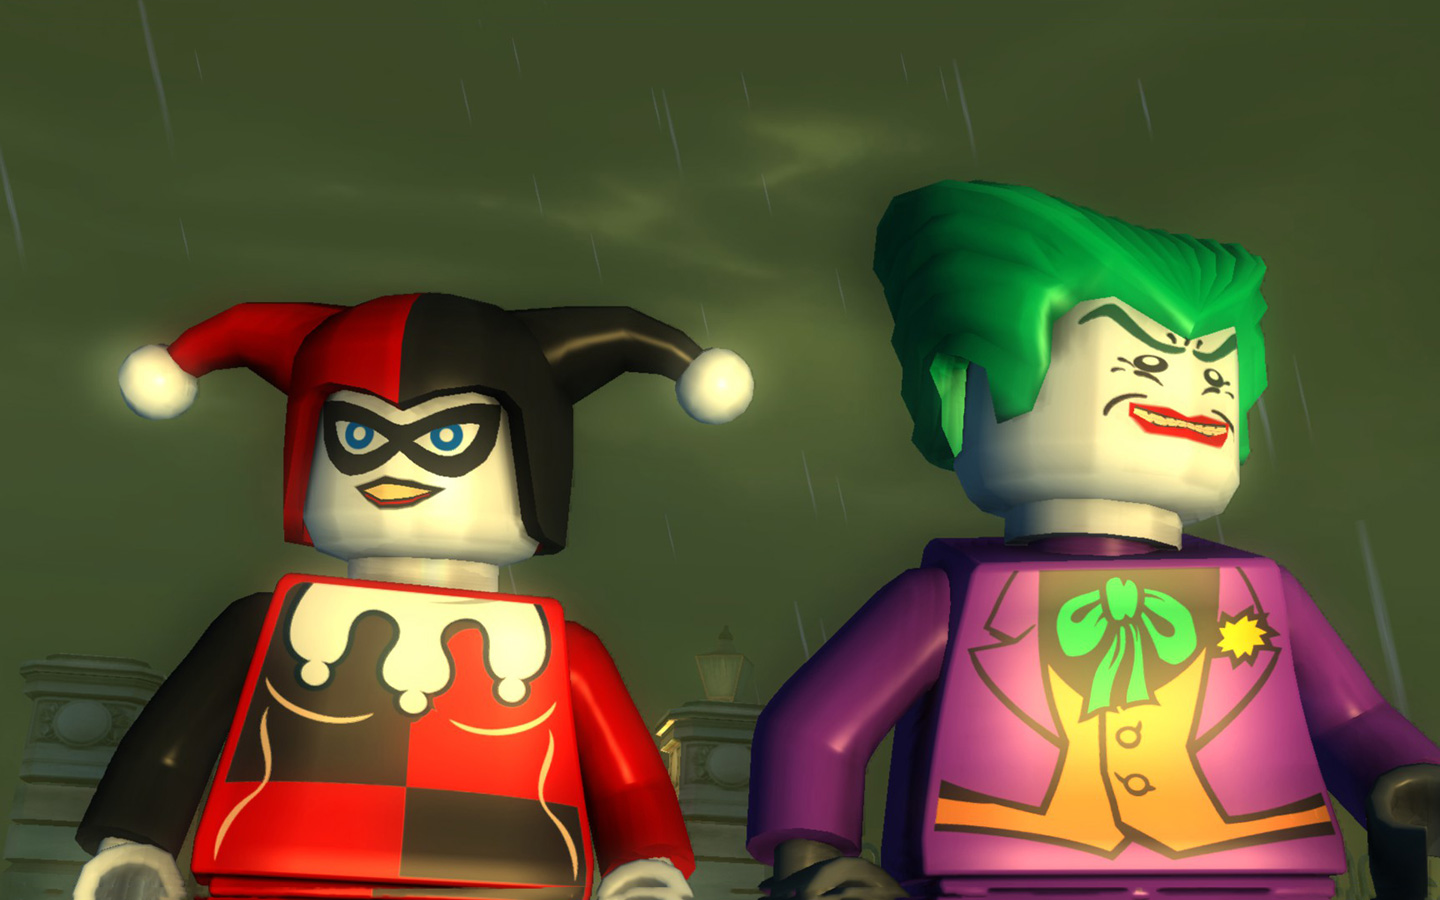 Free Lego Batman: The Videogame Wallpaper in 1440x900